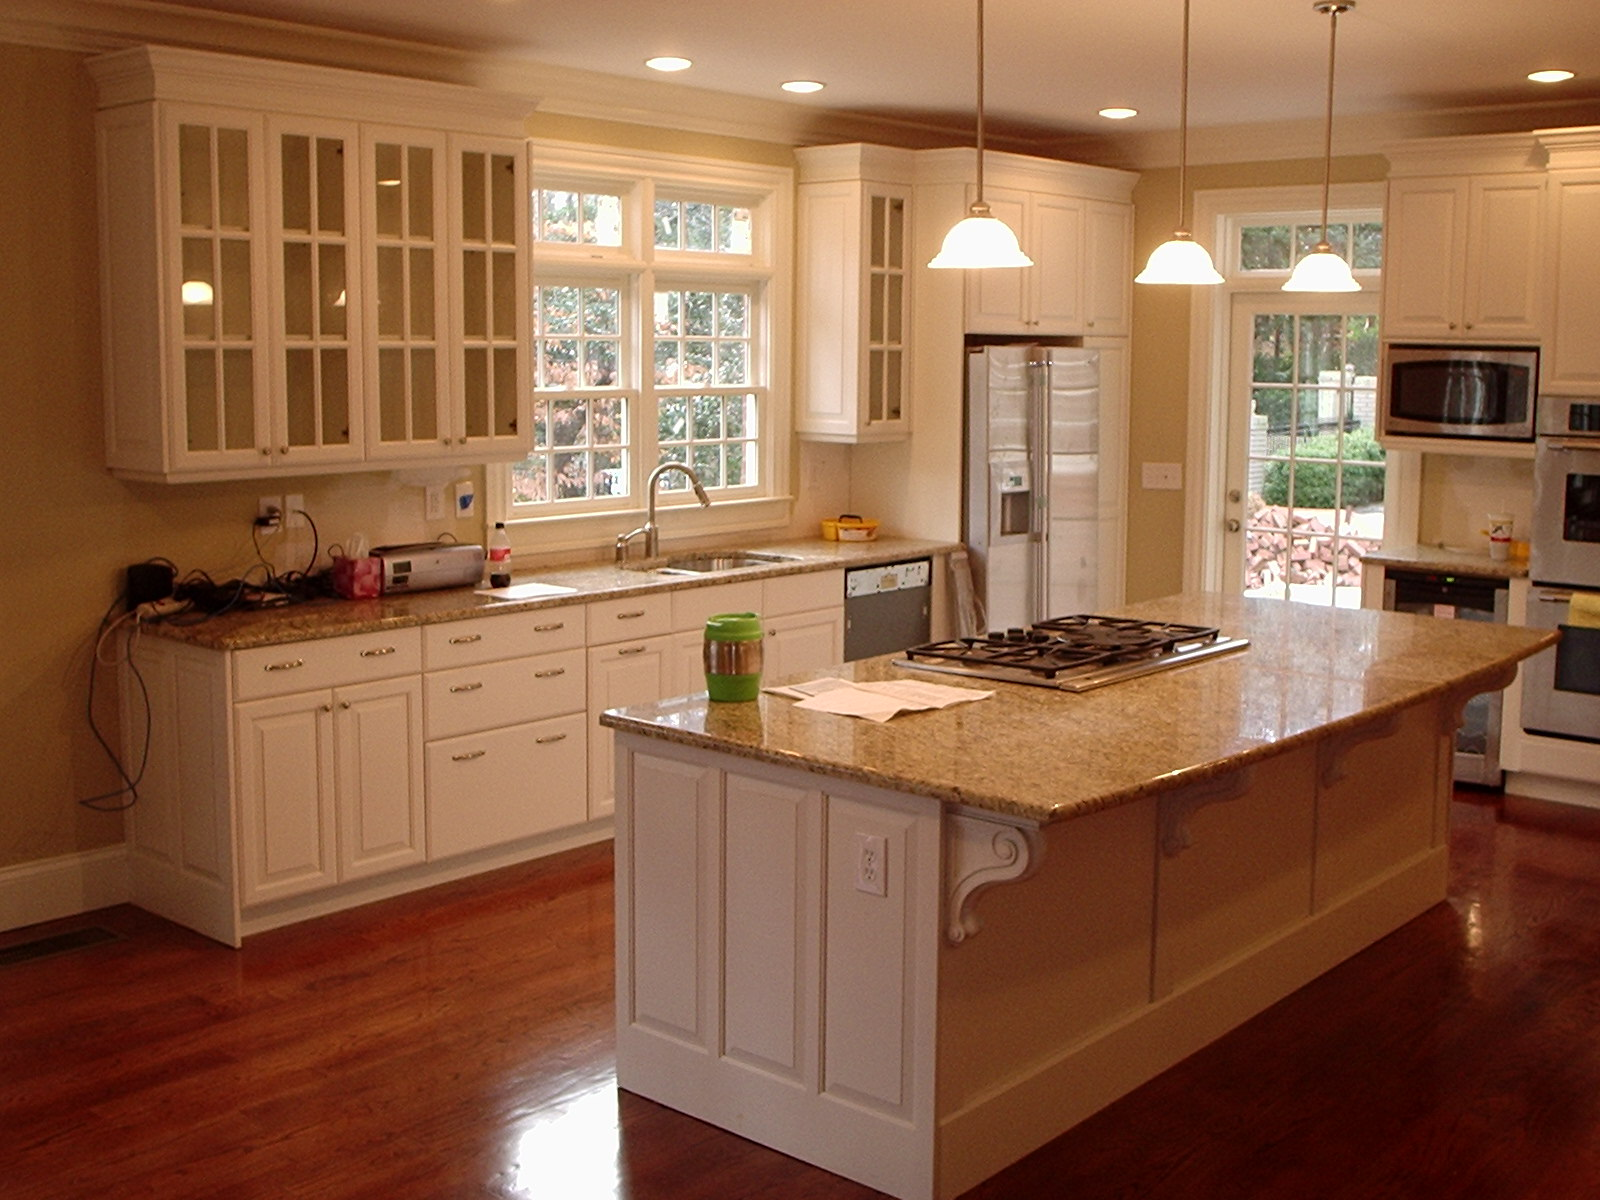 Mobile kitchen cabinets Photo - 1